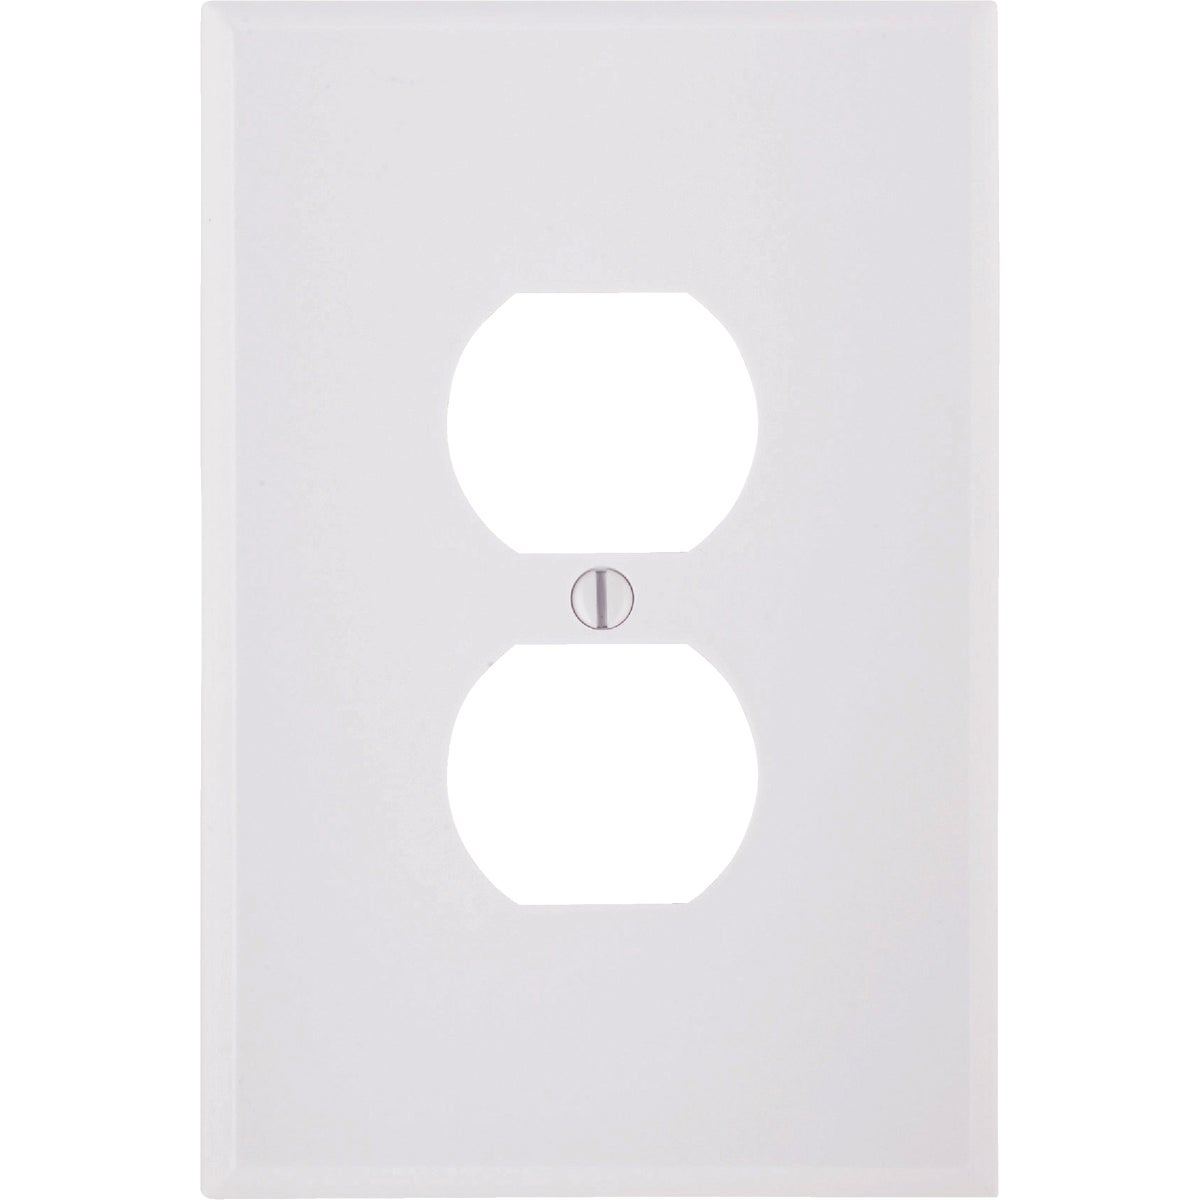 WHT DUPLEX WALL PLATE - 88103 by Leviton Mfg Co